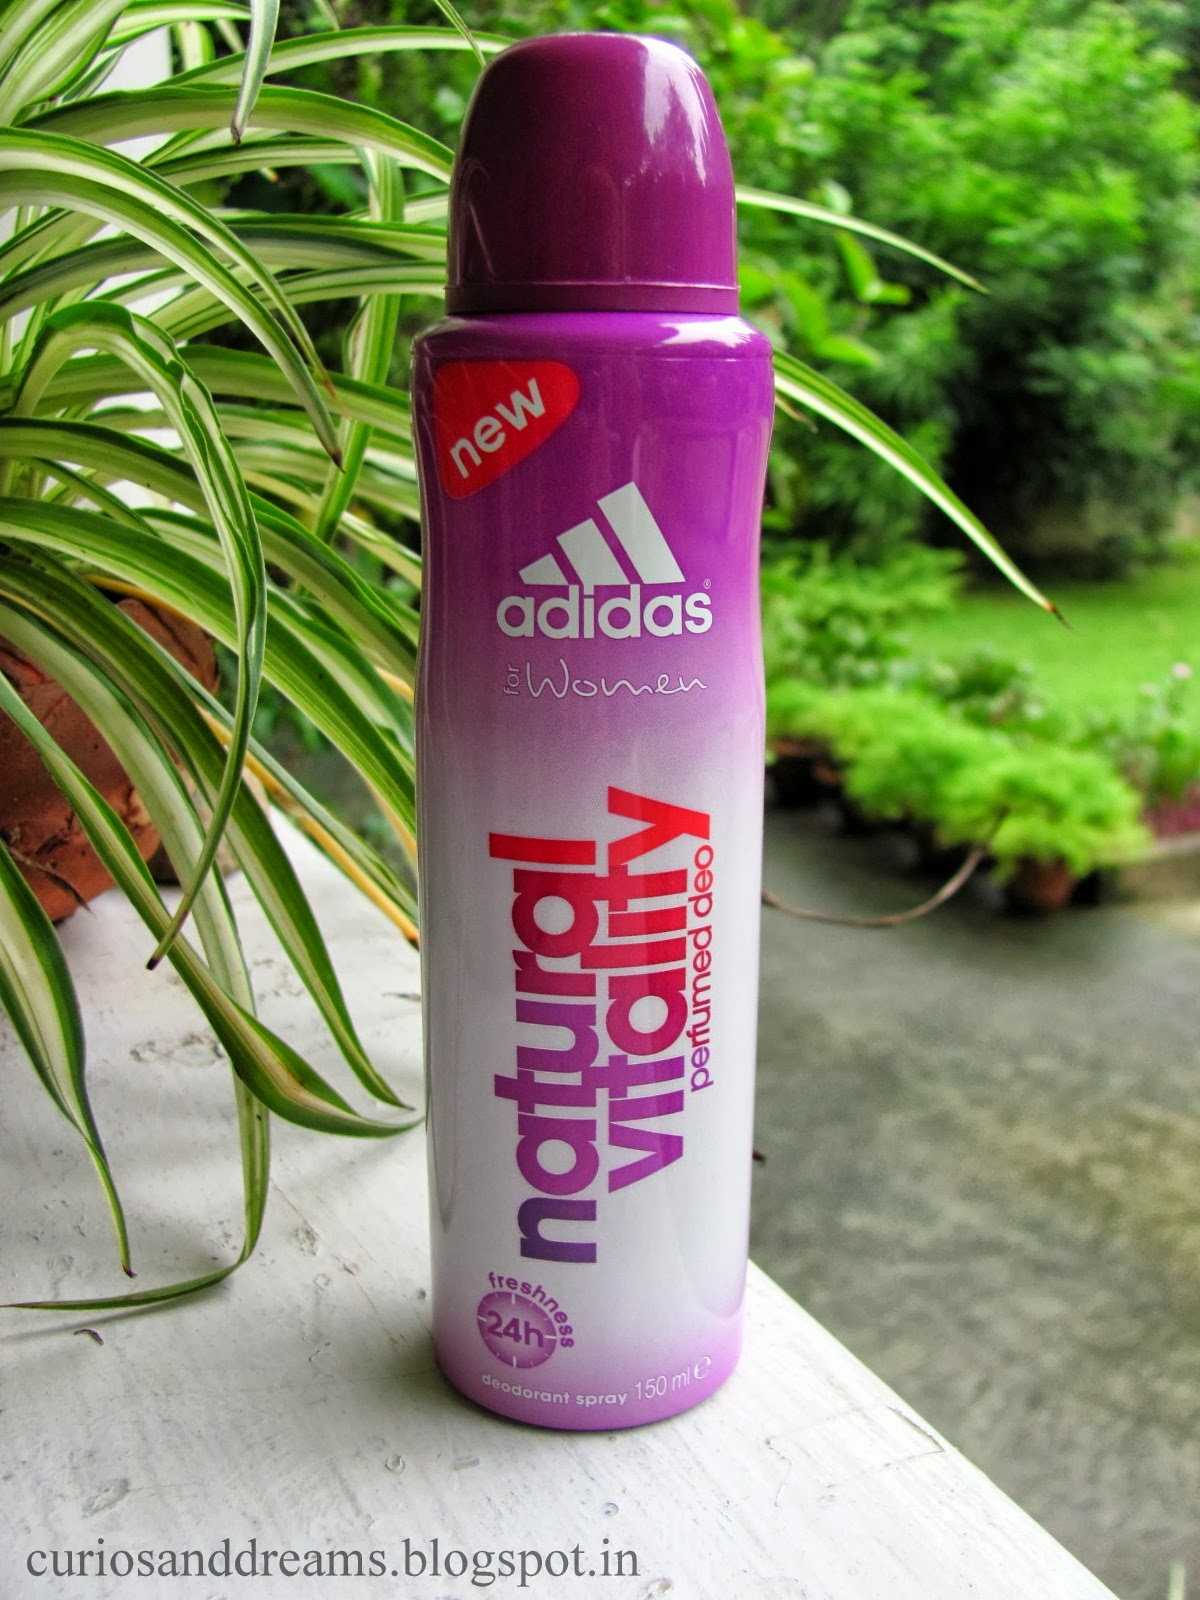 Adidas Natural Vitality Deodorant review, Adidas deo review, Adidas women deo review